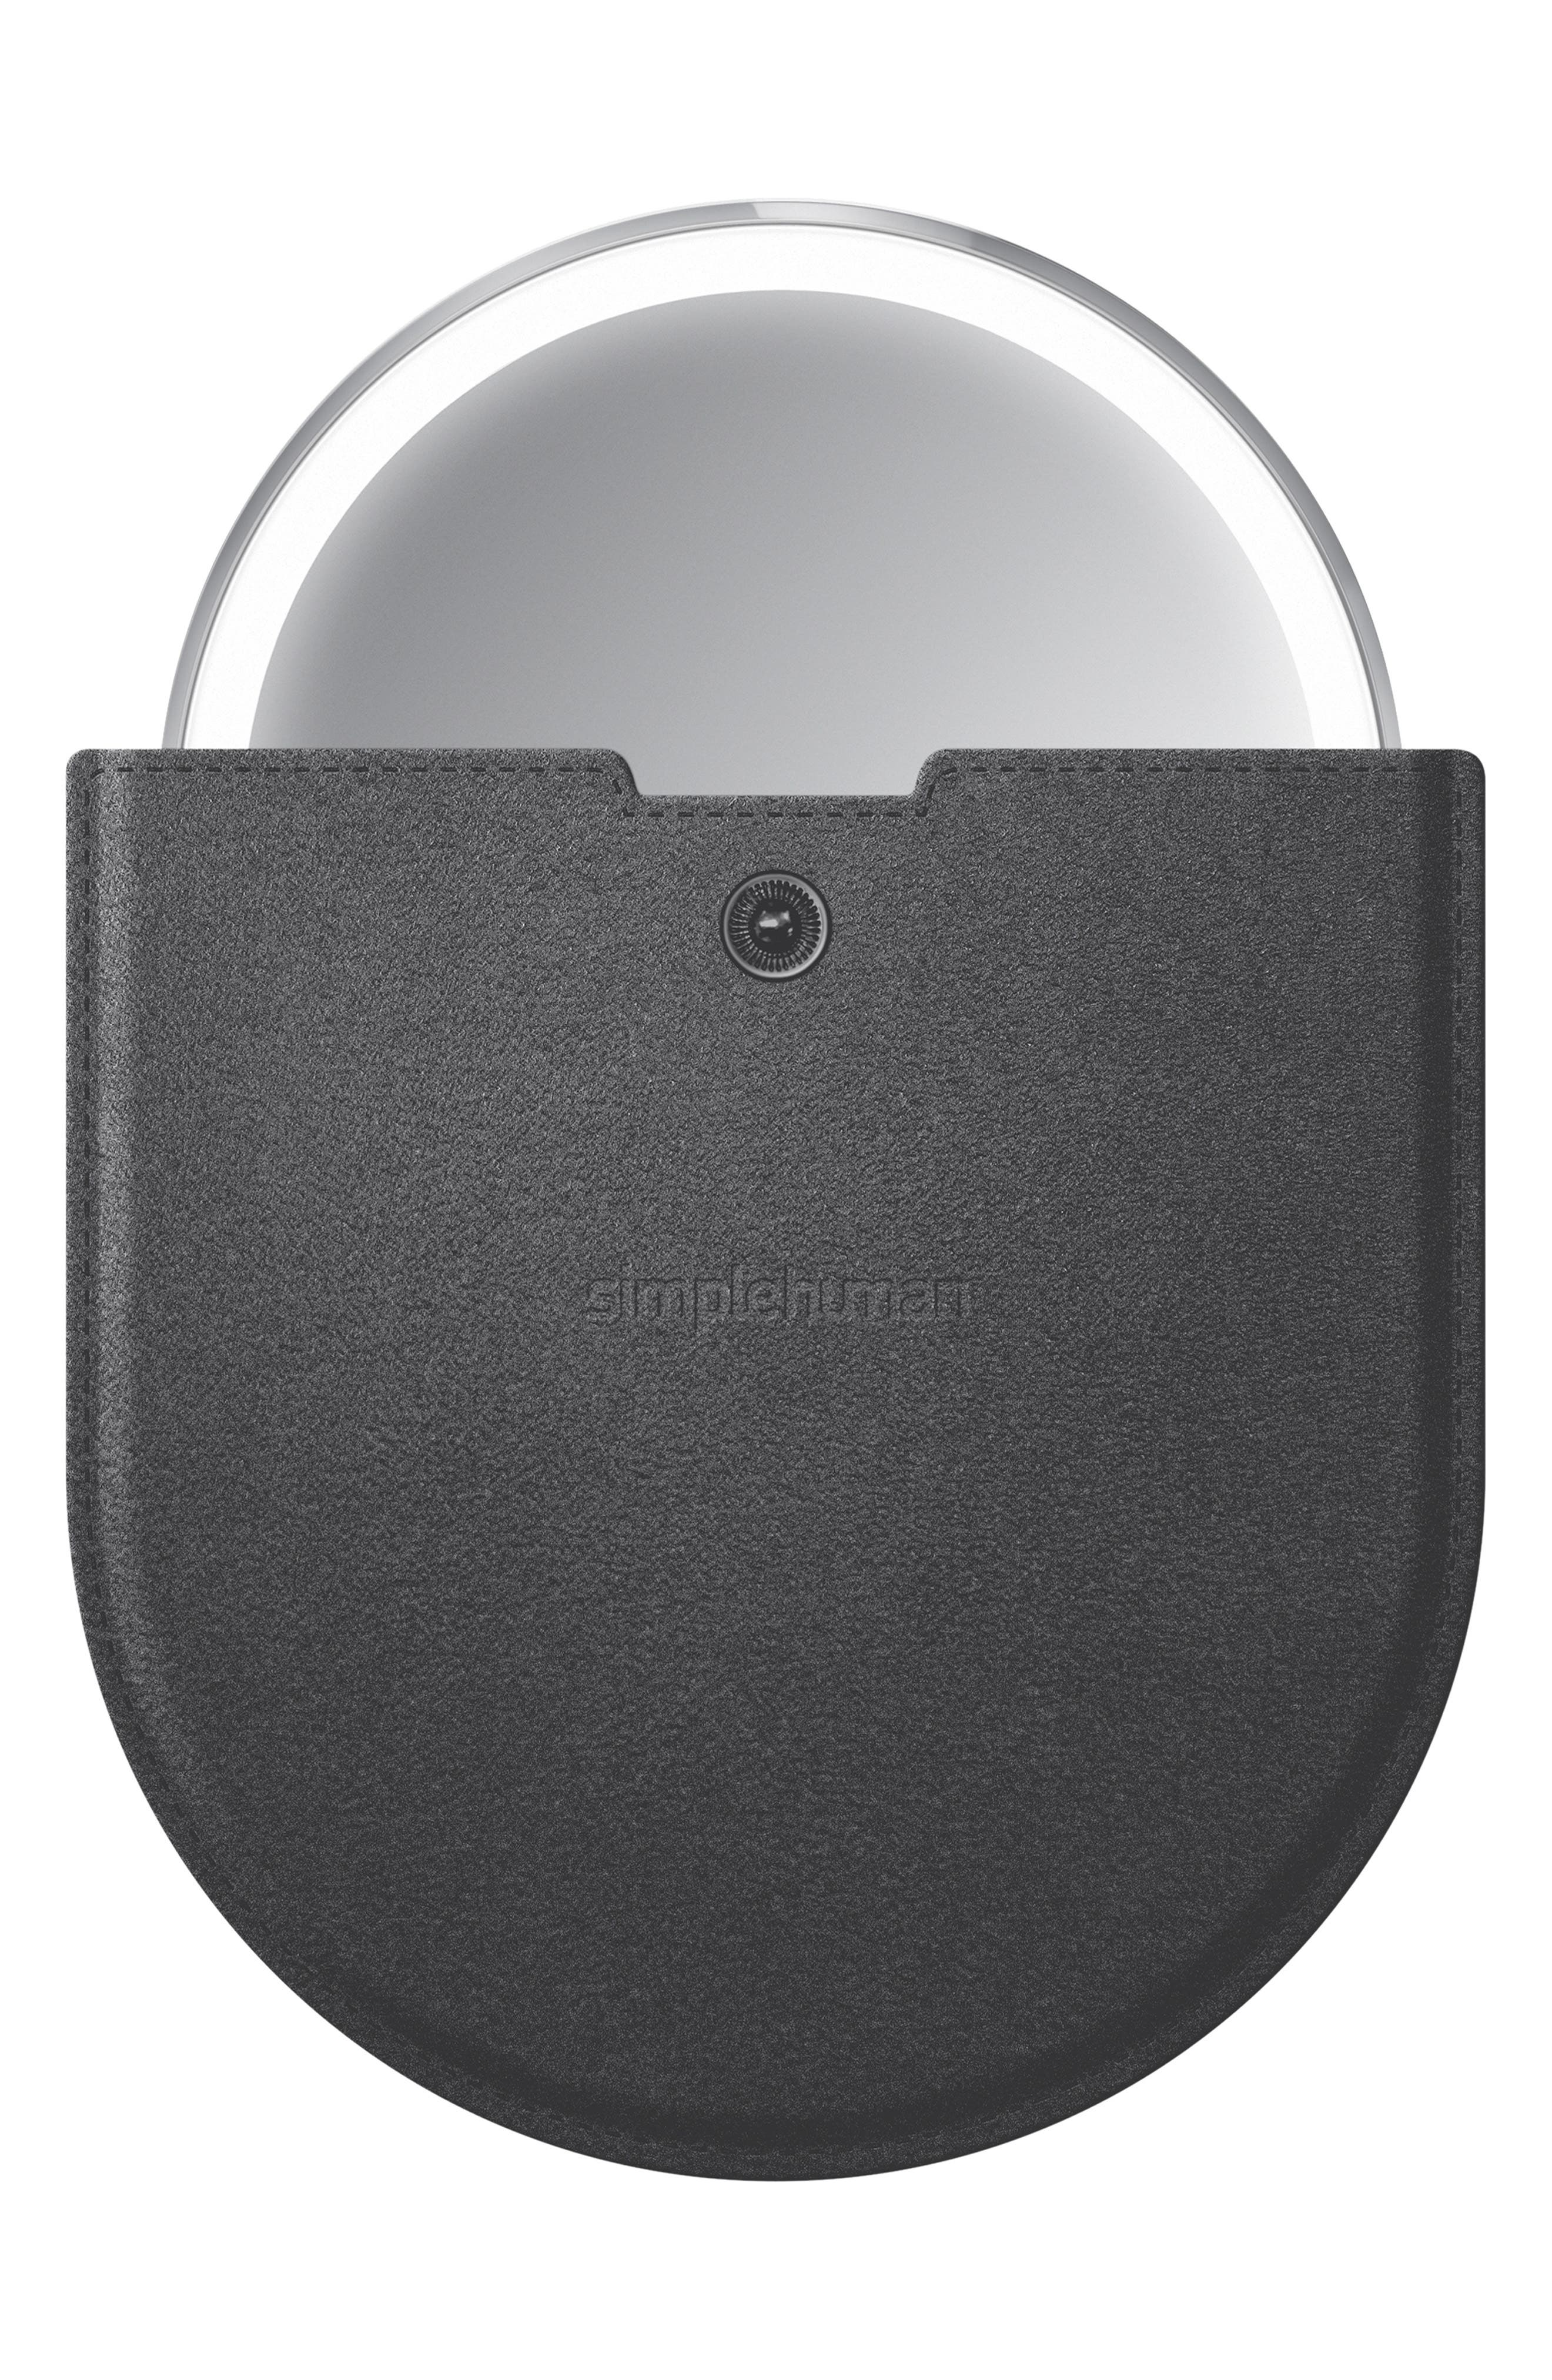 SIMPLEHUMAN, 4-Inch Sensor Mirror Compact, Alternate thumbnail 5, color, BLACK